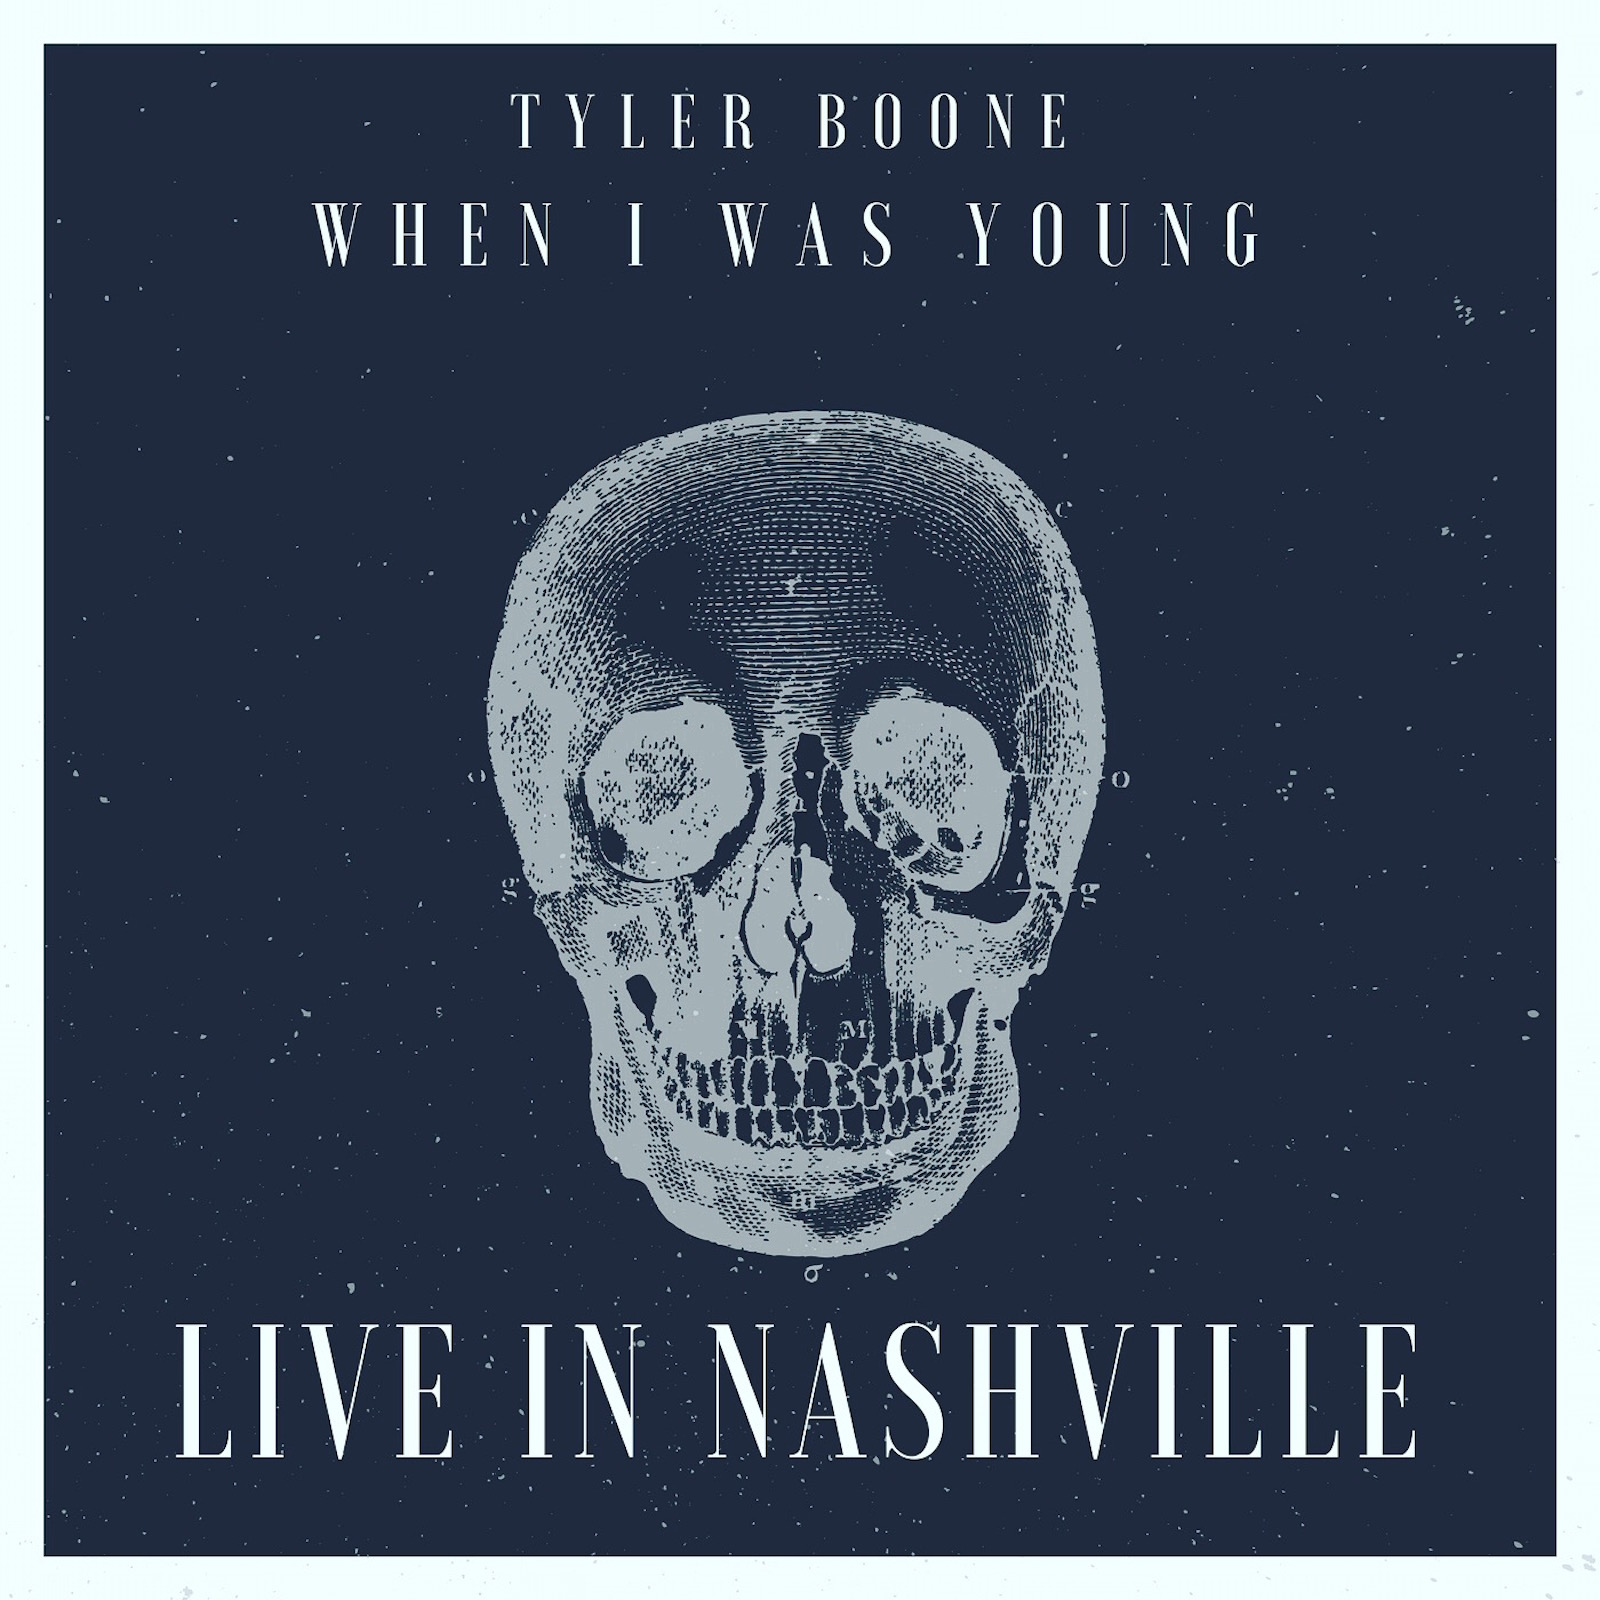 Tyler Boone - When I Was Young (Live In Nashville) Cover Art.JPG